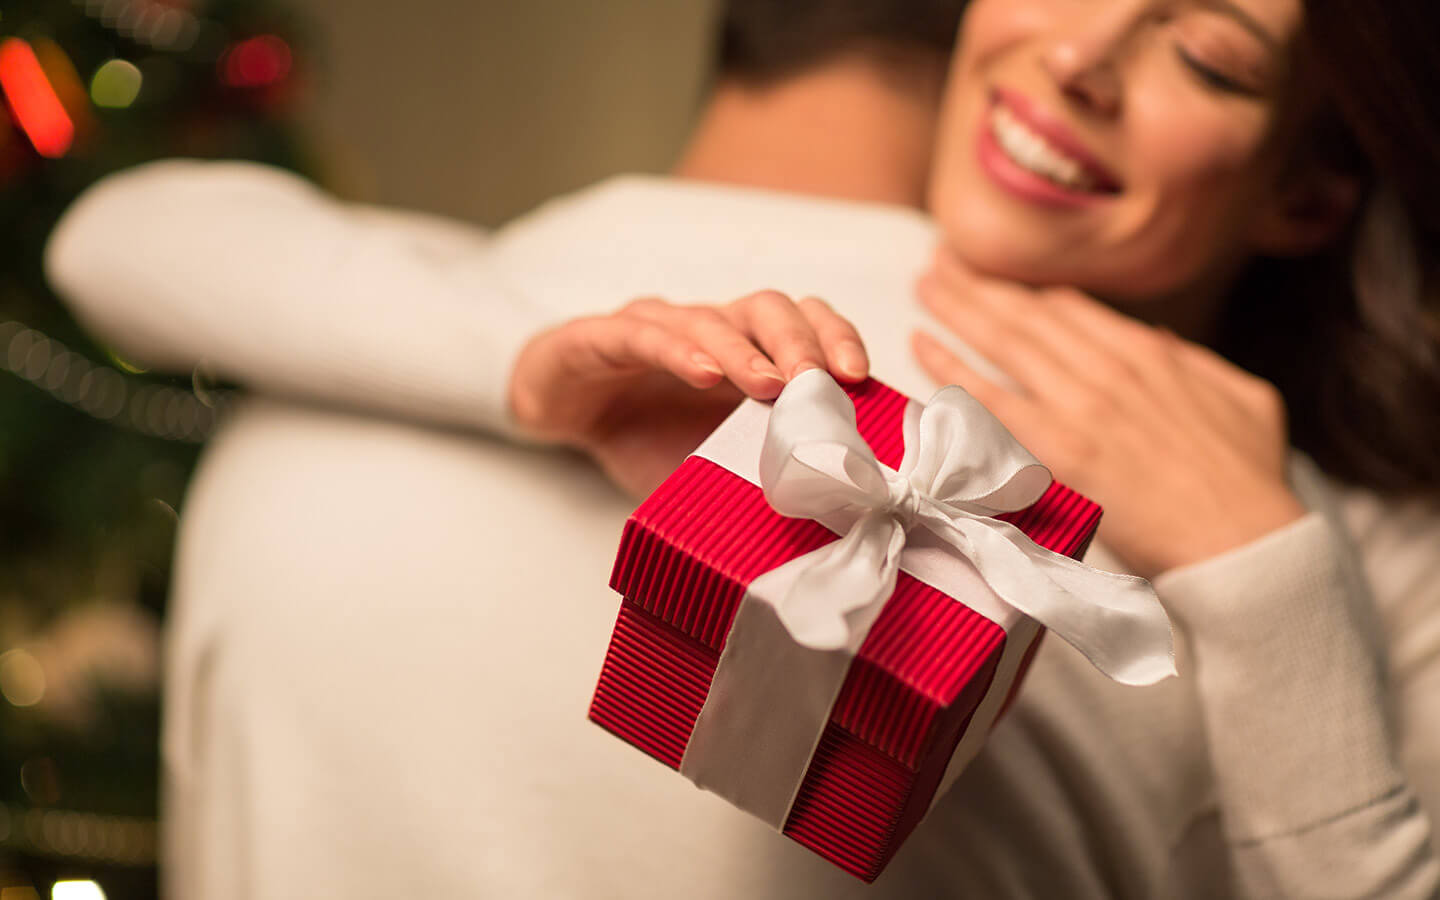 Romantic couple hugging and woman holding a gift box